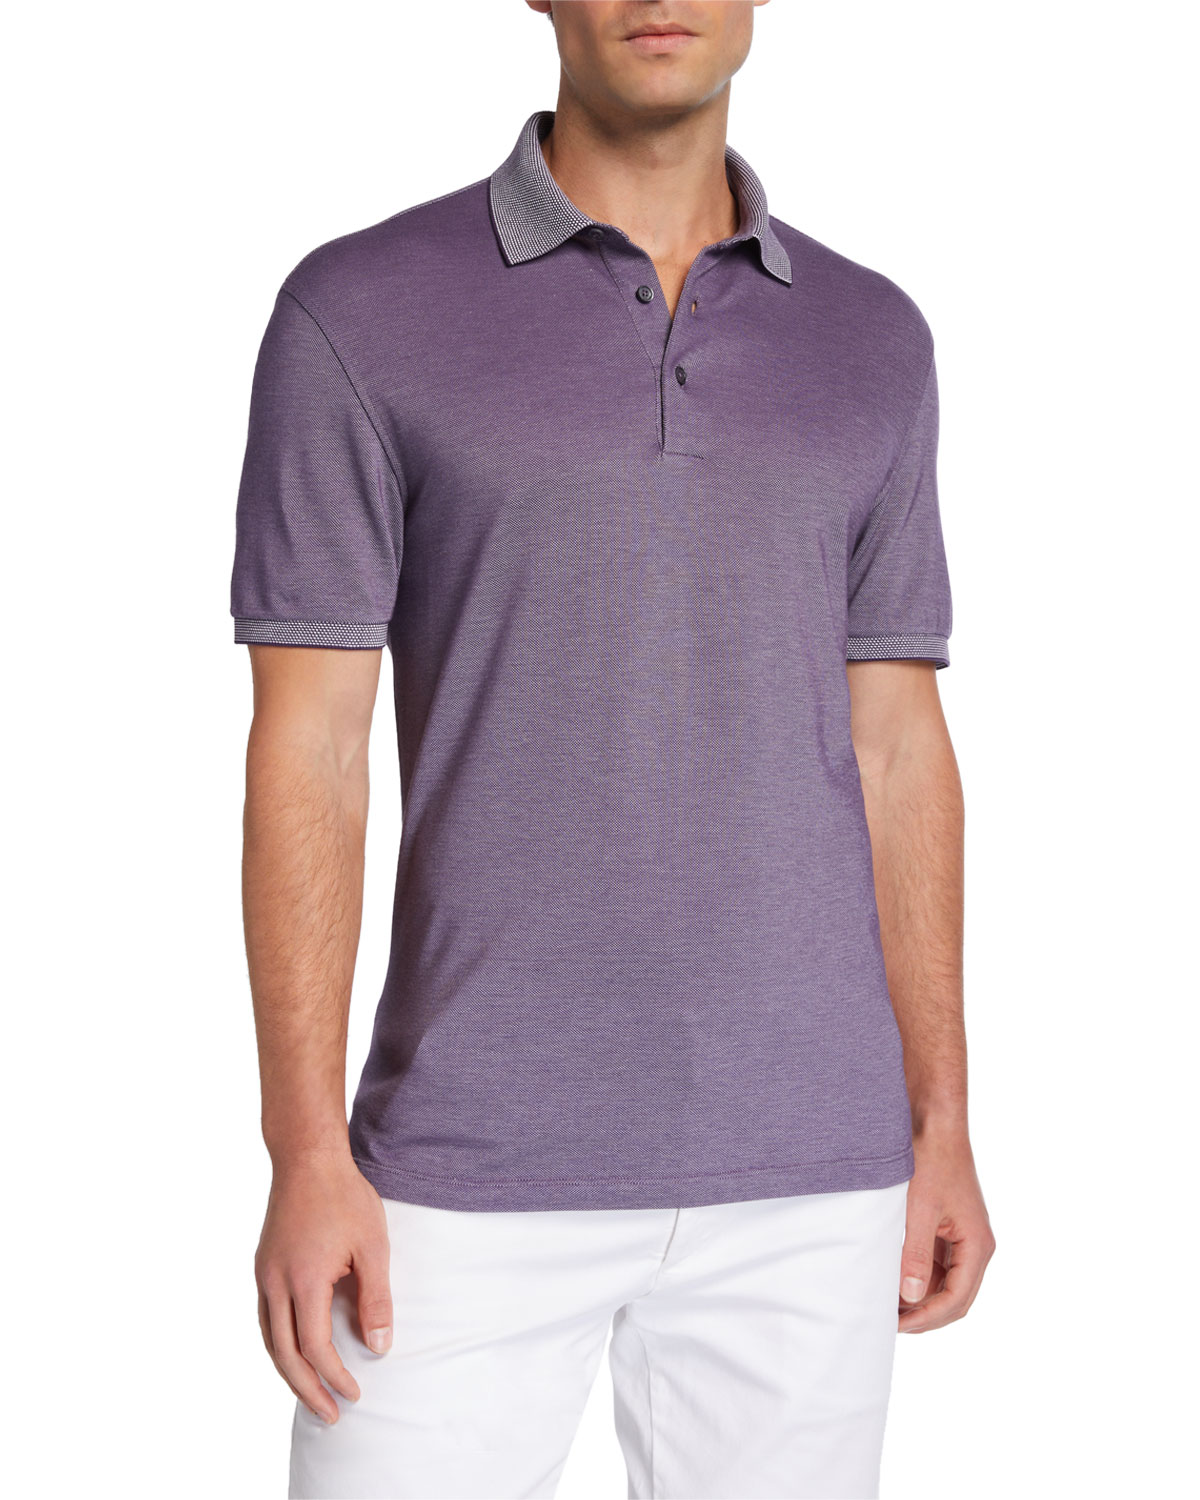 Ermenegildo Zegna T-shirts MEN'S COTTON JERSEY POLO SHIRT WITH CONTRAST COLLAR/CUFFS